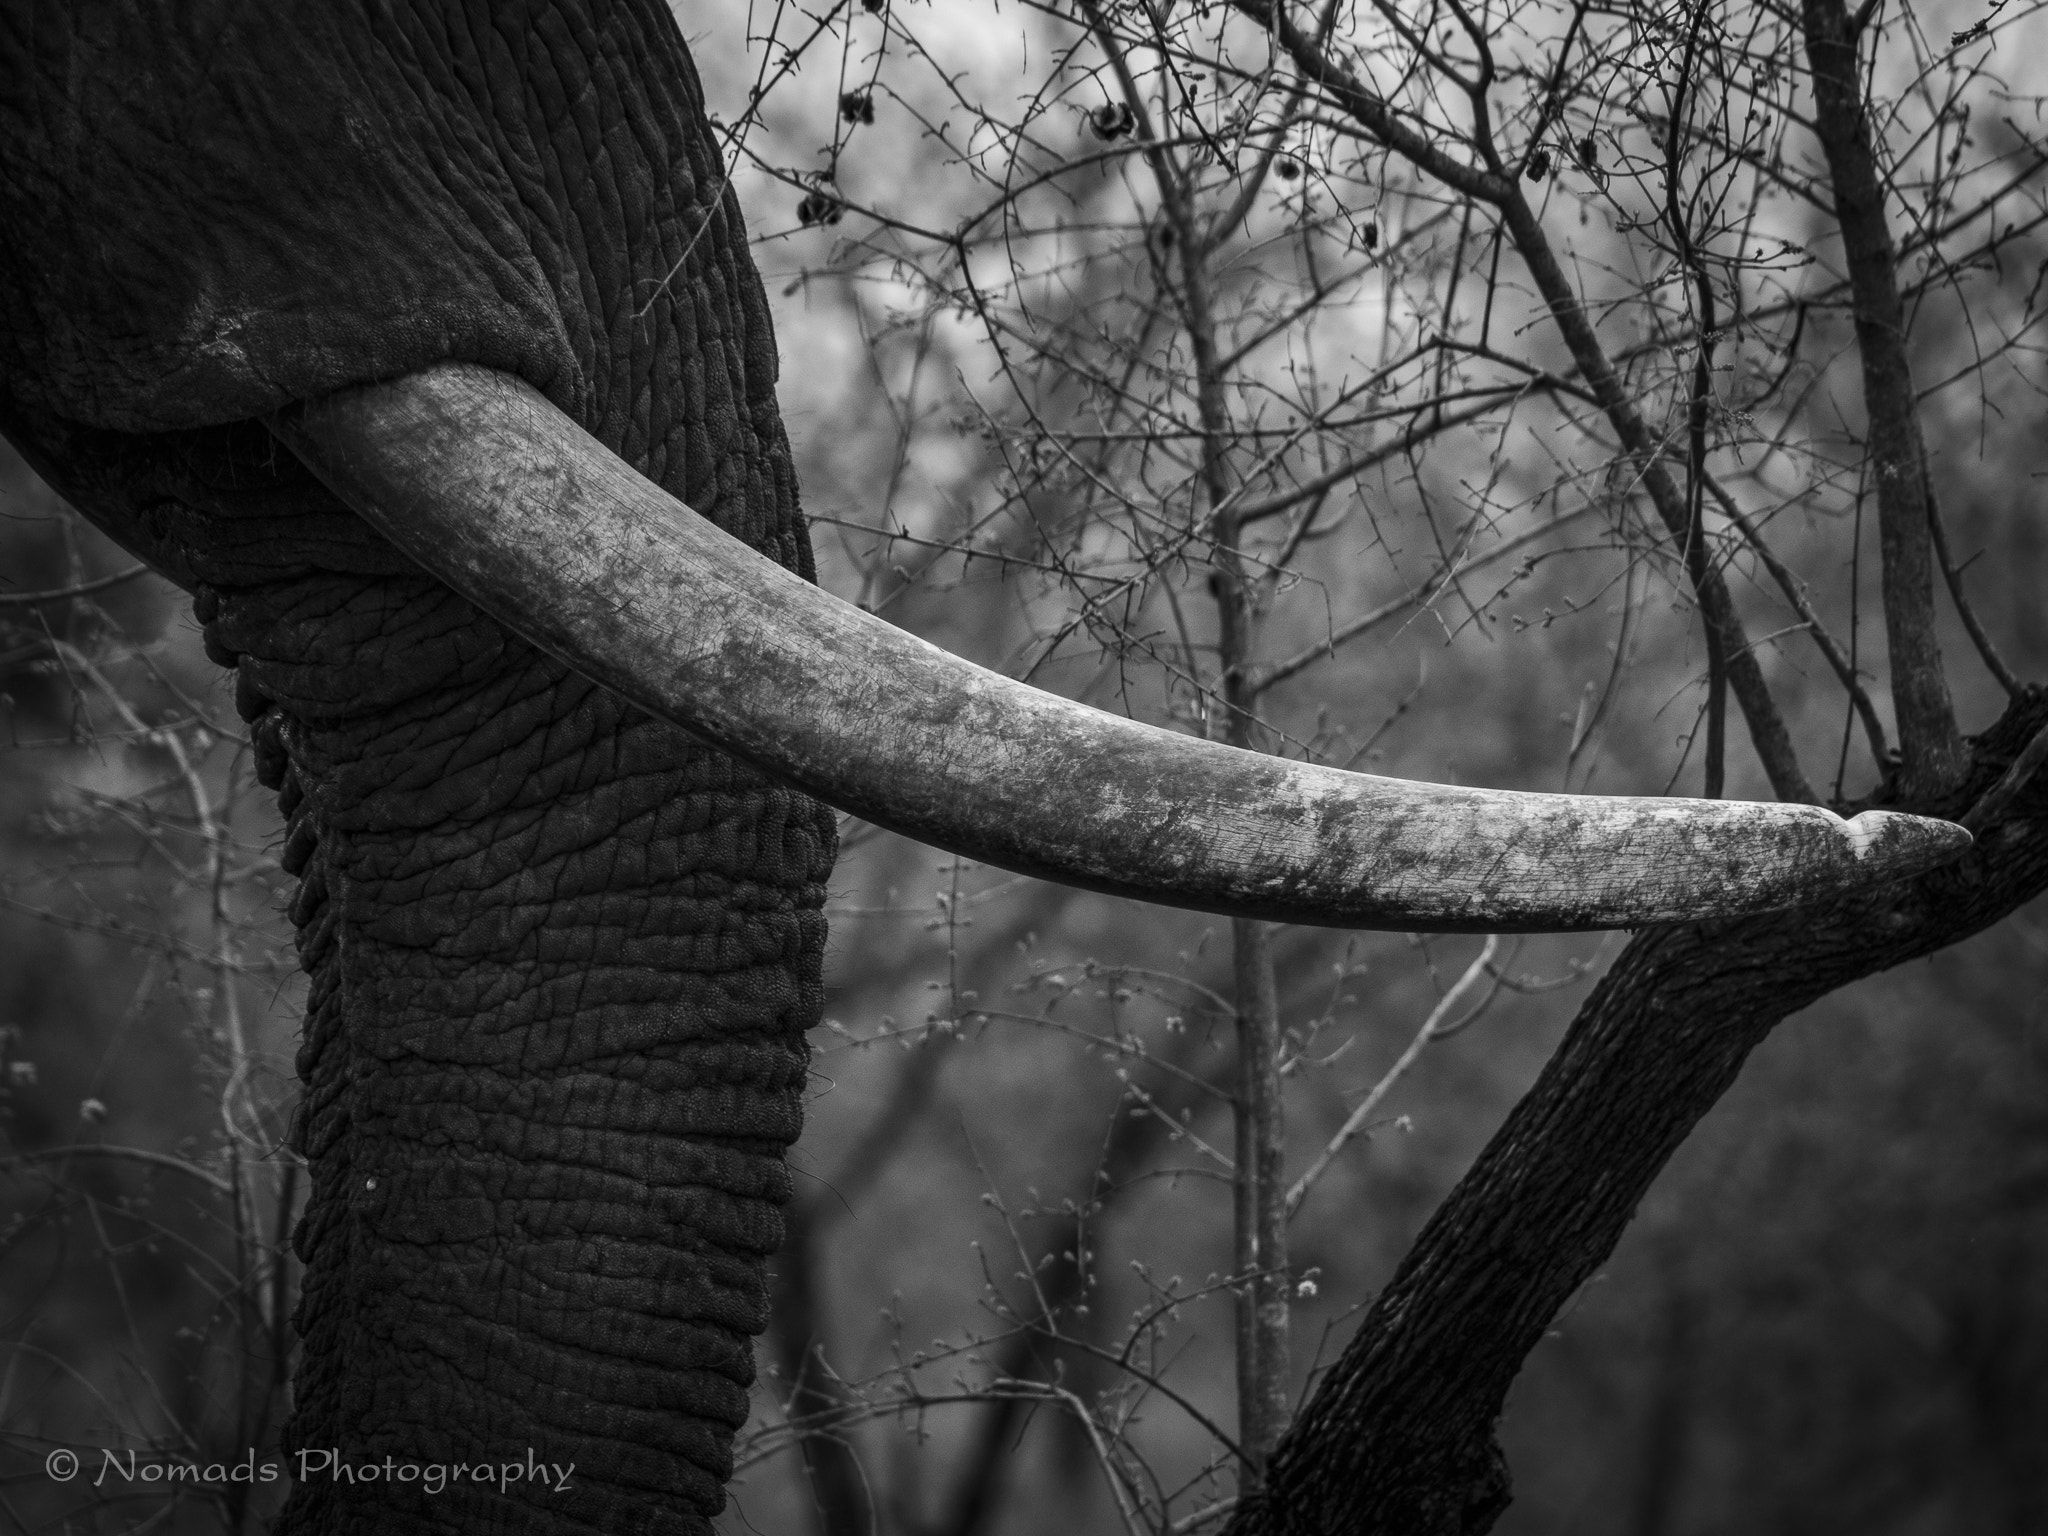 de7117d38 Worn - An elephant s tusks are both a blessing and curse. Blessing because  they give